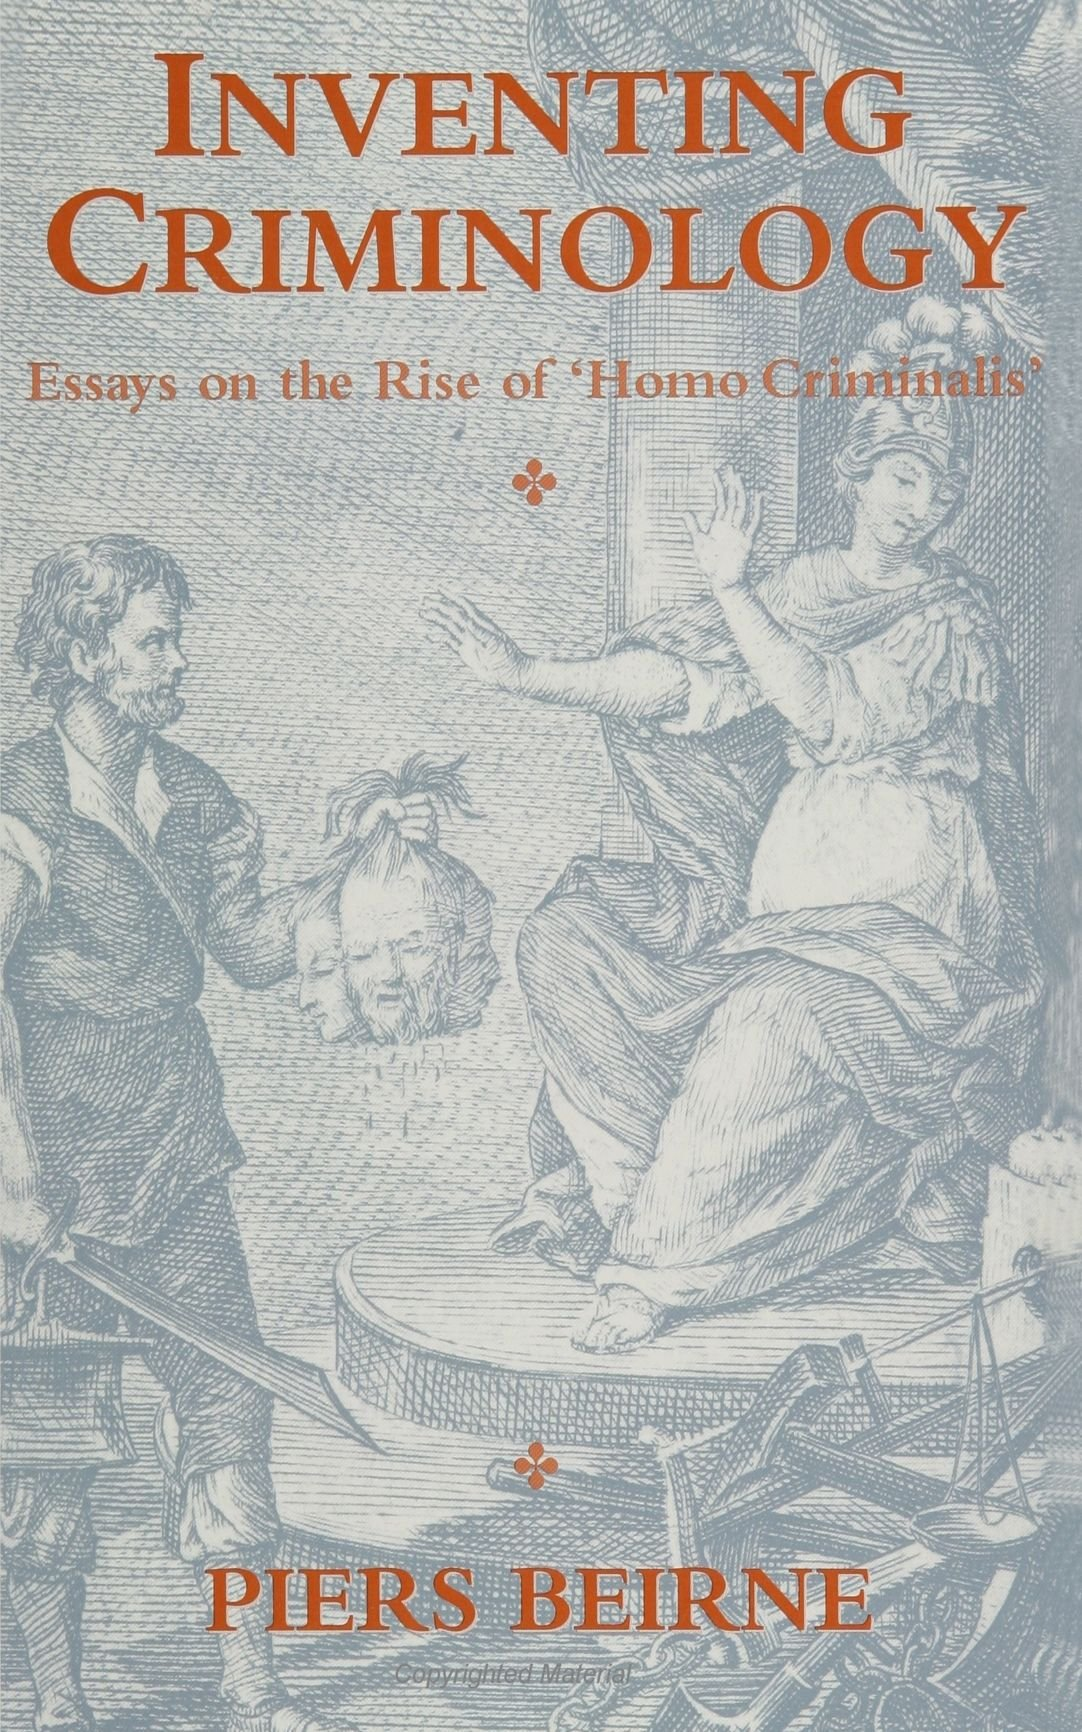 inventing criminology essays on the rise of homo criminalis inventing criminology essays on the rise of homo criminalis suny series in deviance and social control suny series in deviance social control